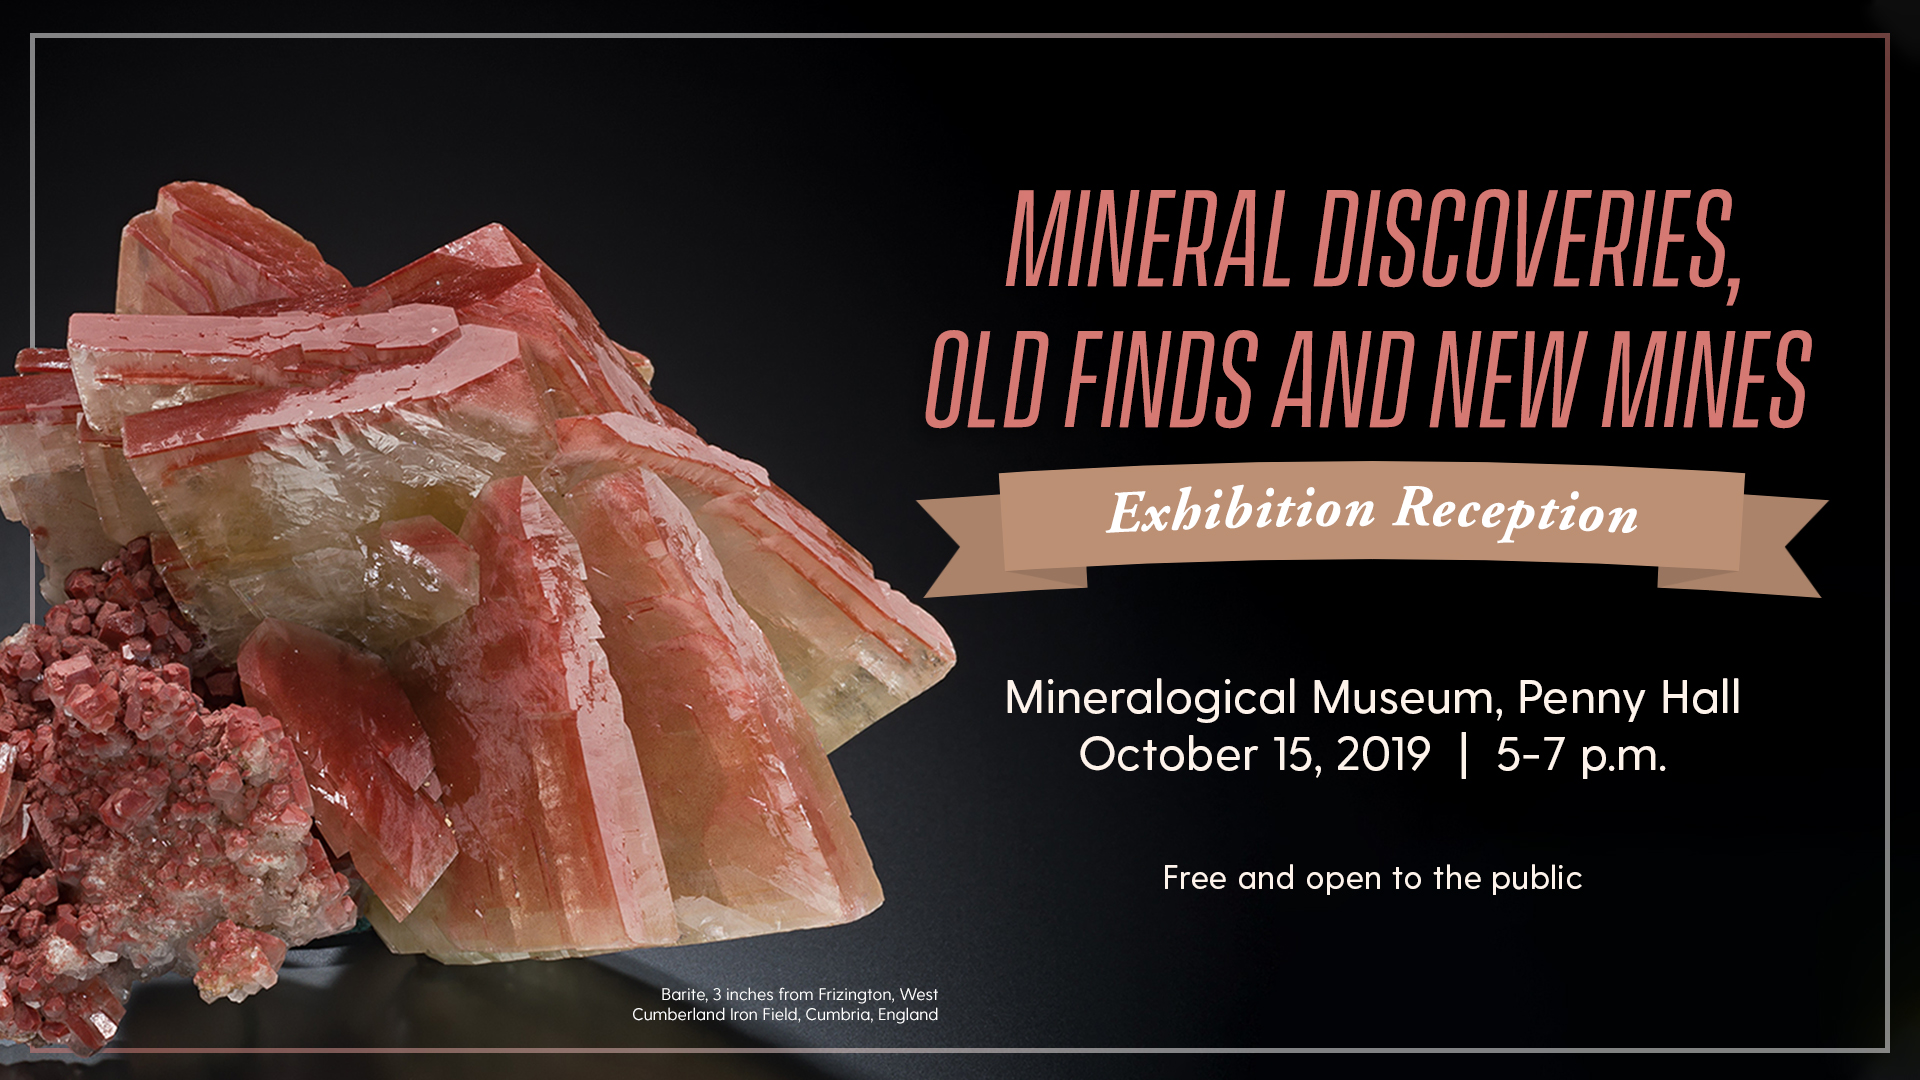 Promotional image for Mineral Discoveries, Old Finds and New Mines Exhibition Reception